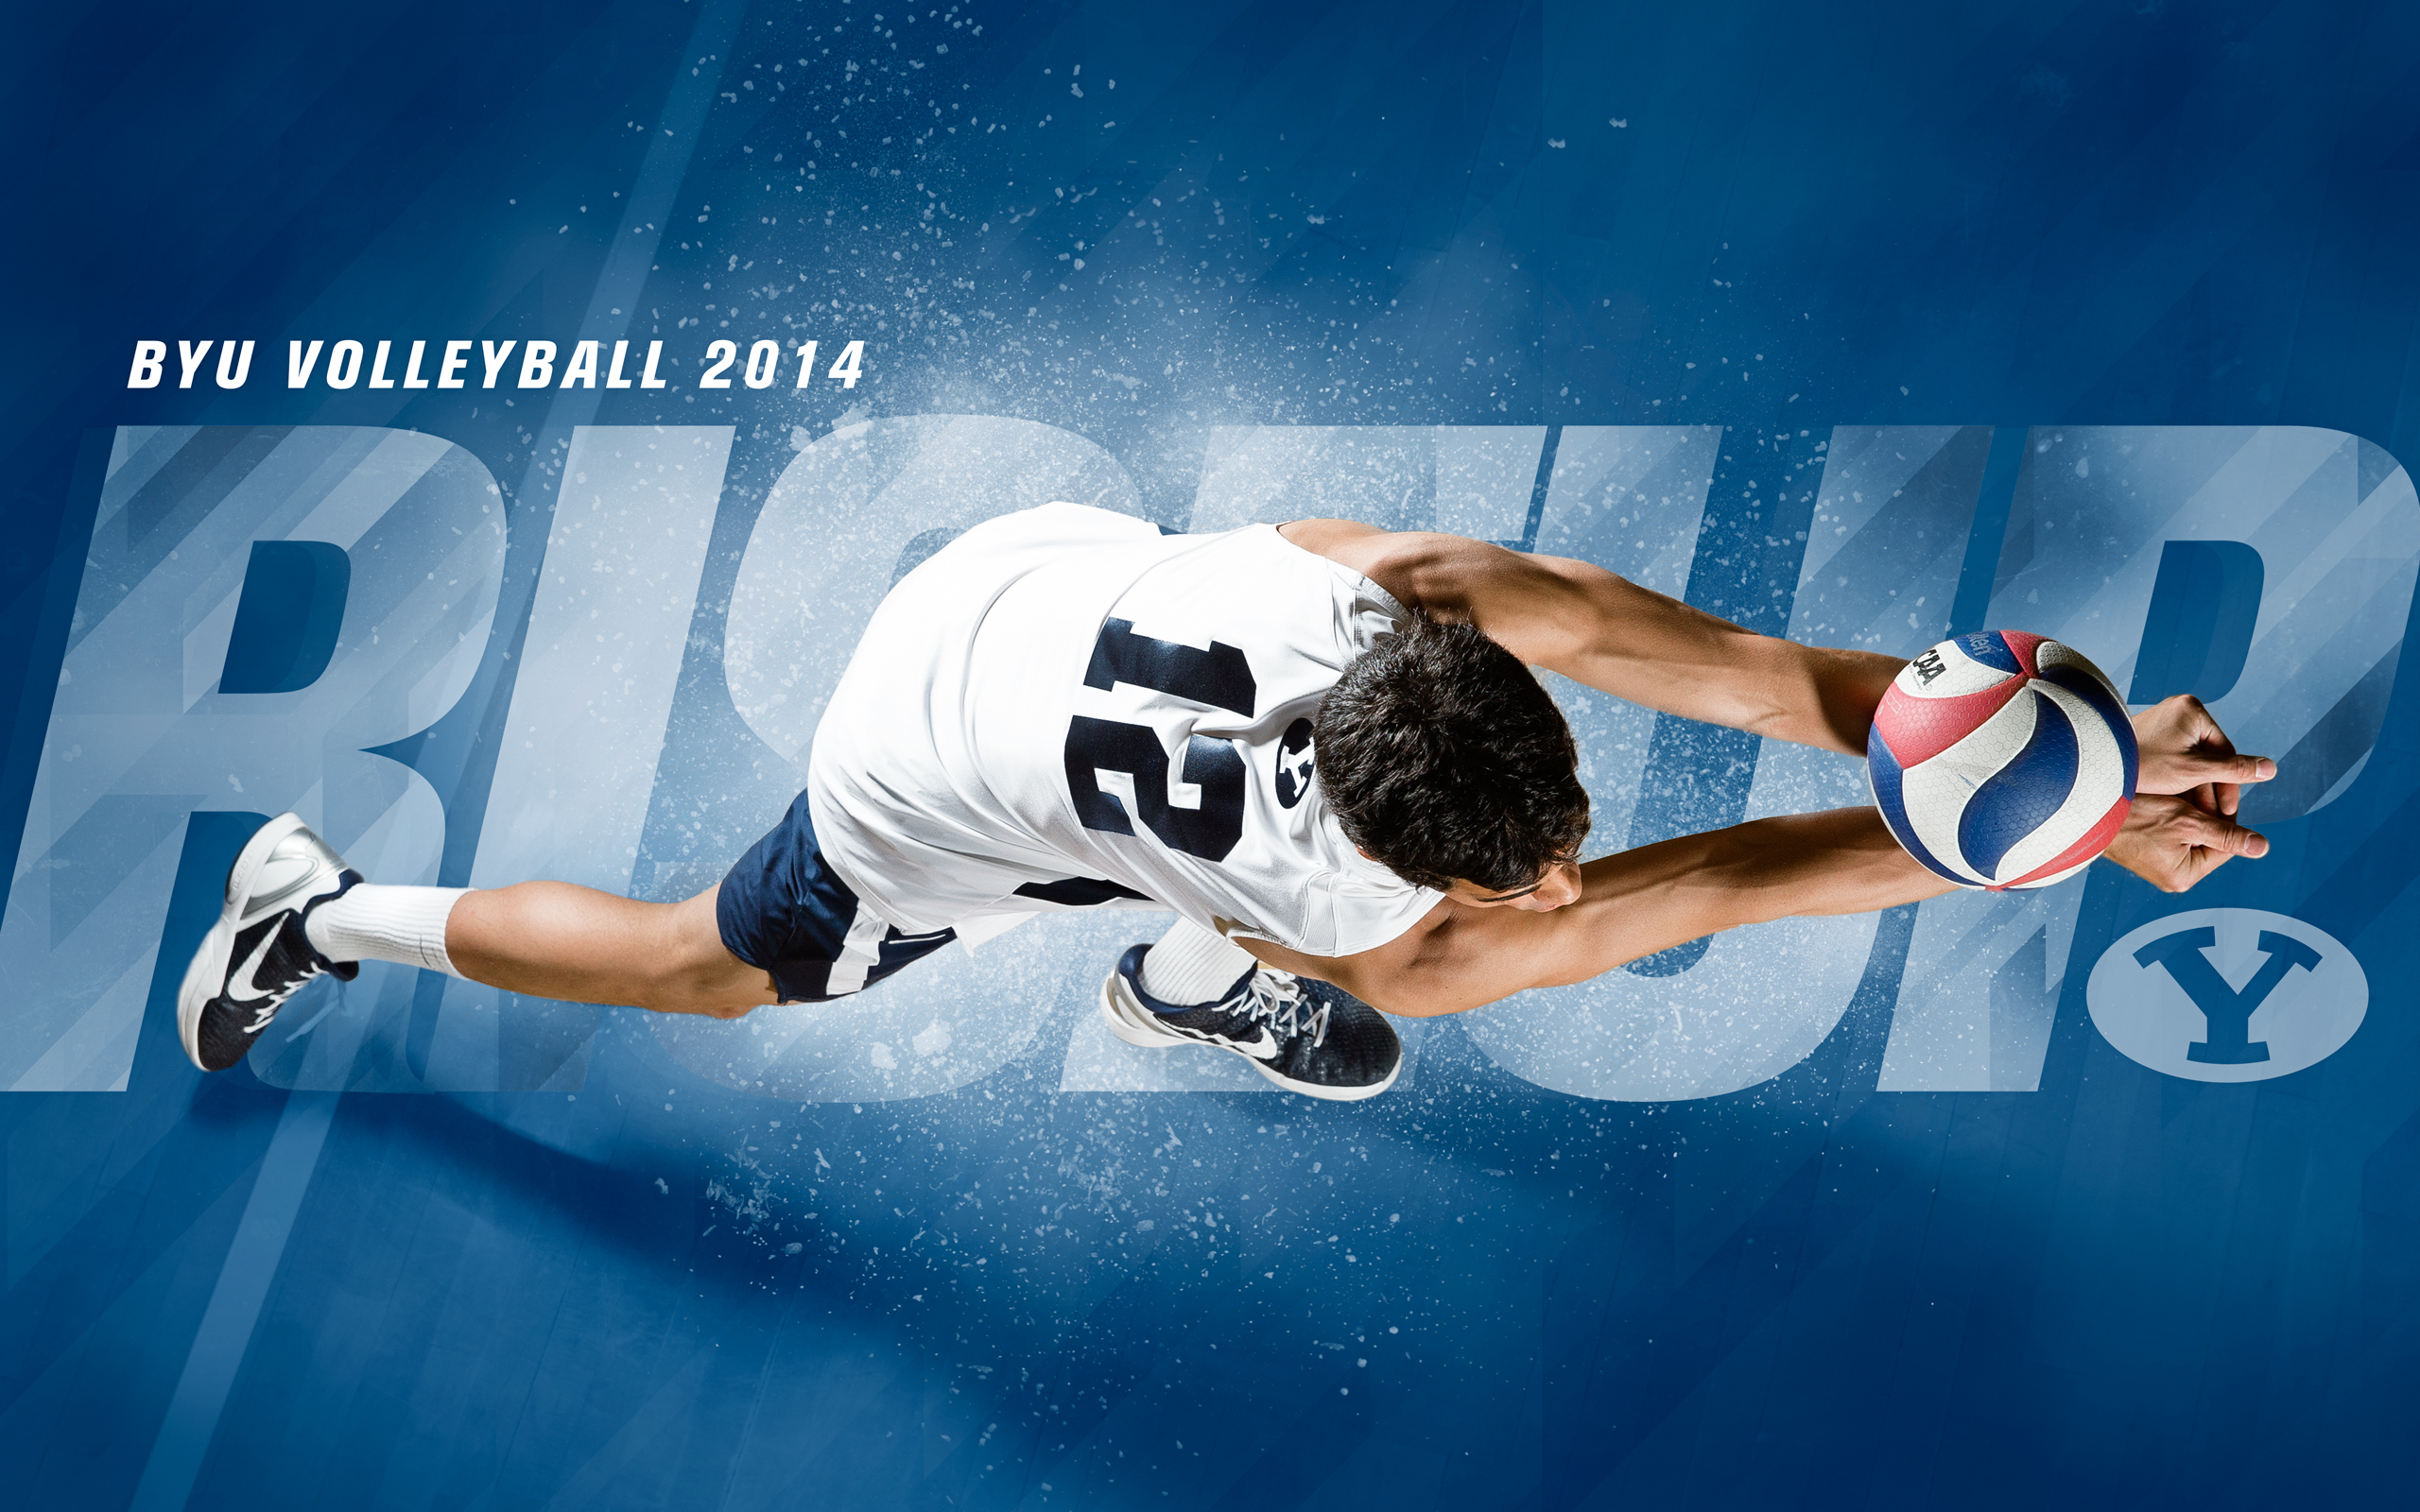 2014 - Jaylen Reyes - BYU Volleyball Wallpaper 2014